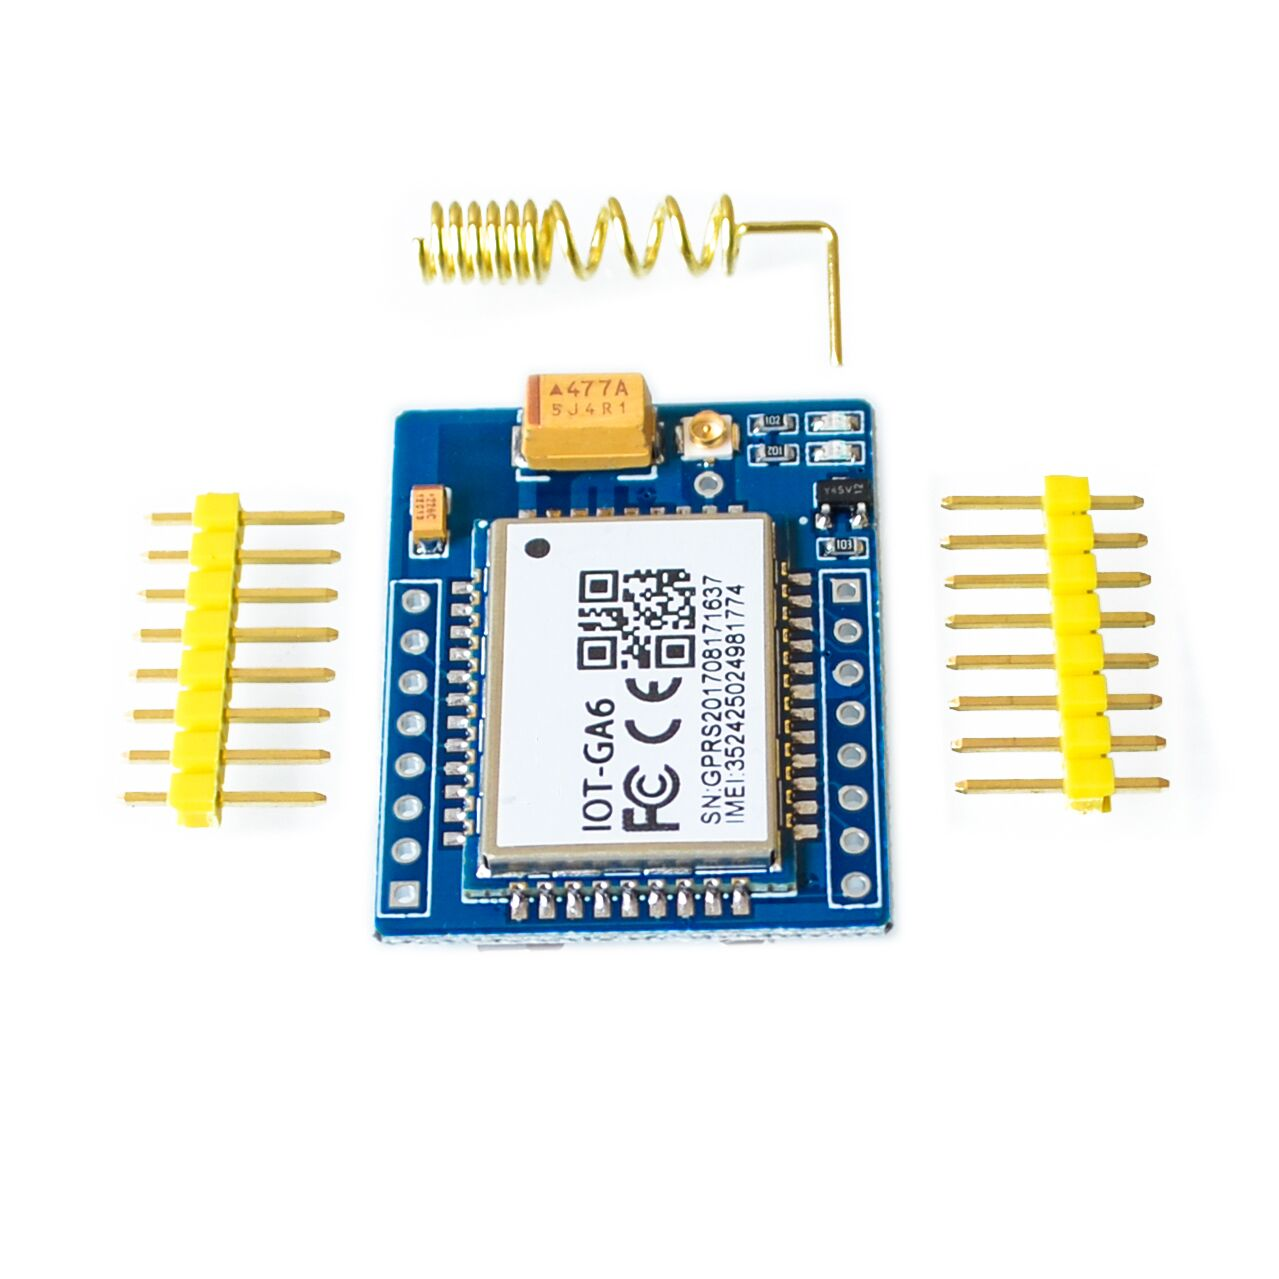 GPRS GSM Kit Wireless Module Board Antenna for SIM800L